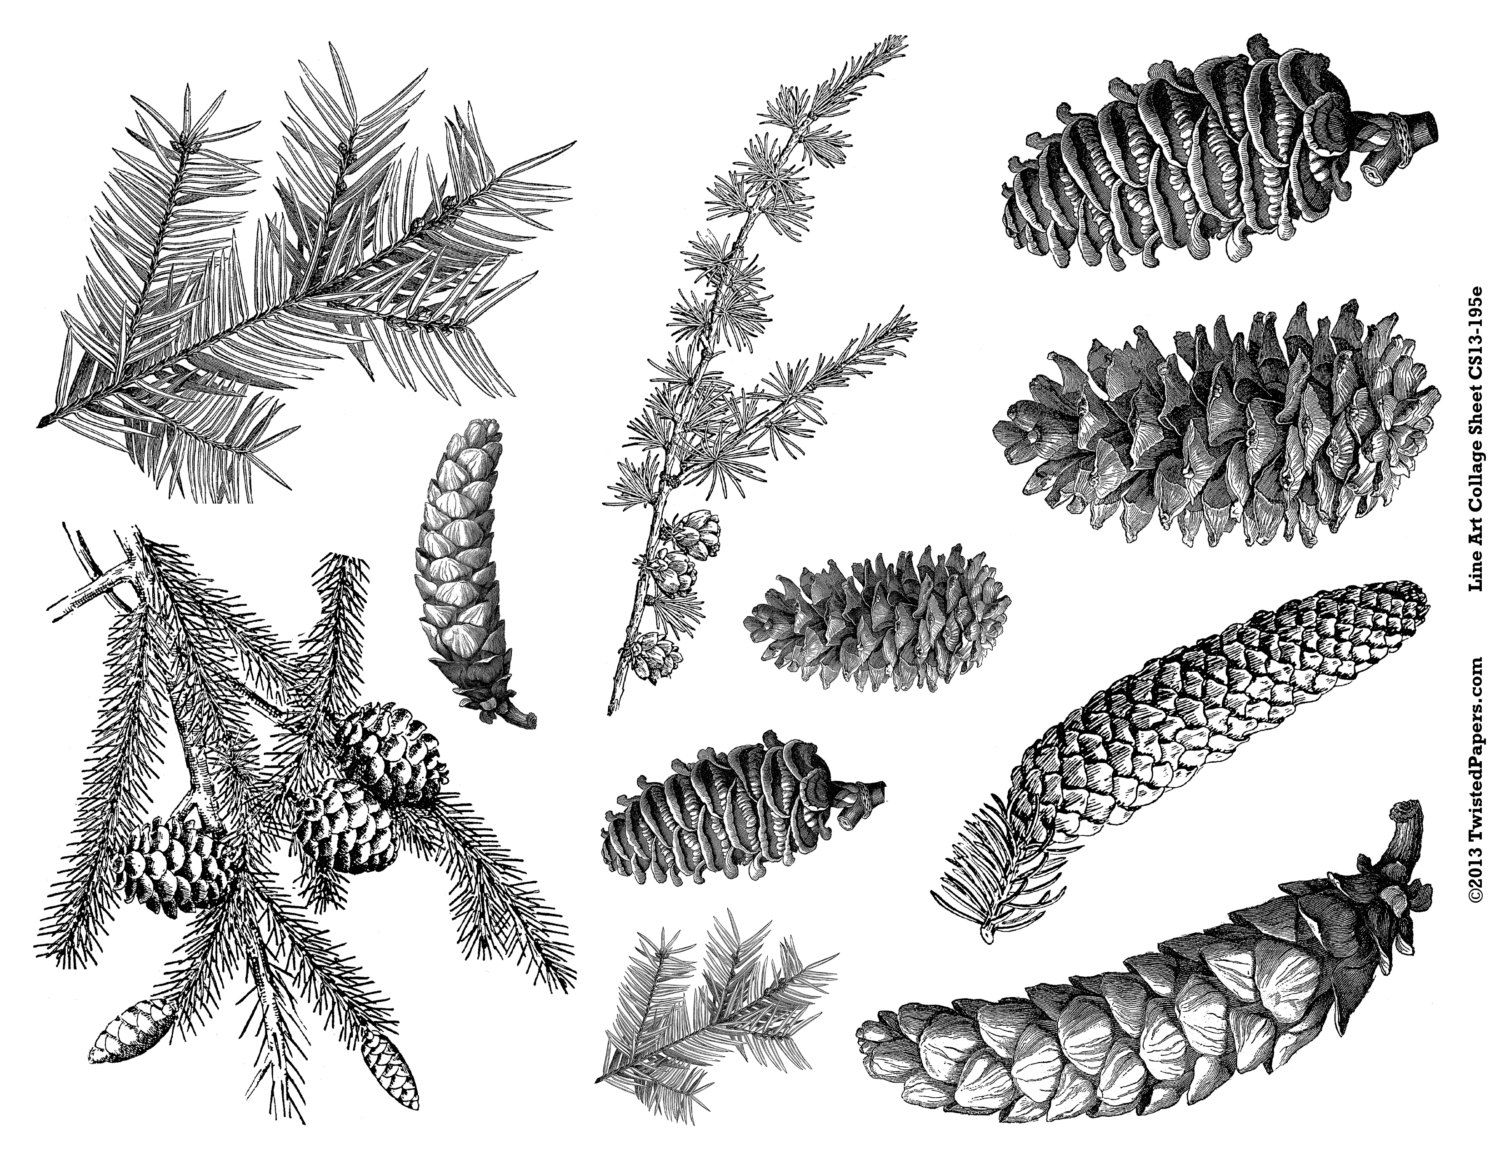 pine cone graphic - Google Search | side line | Pinterest ...